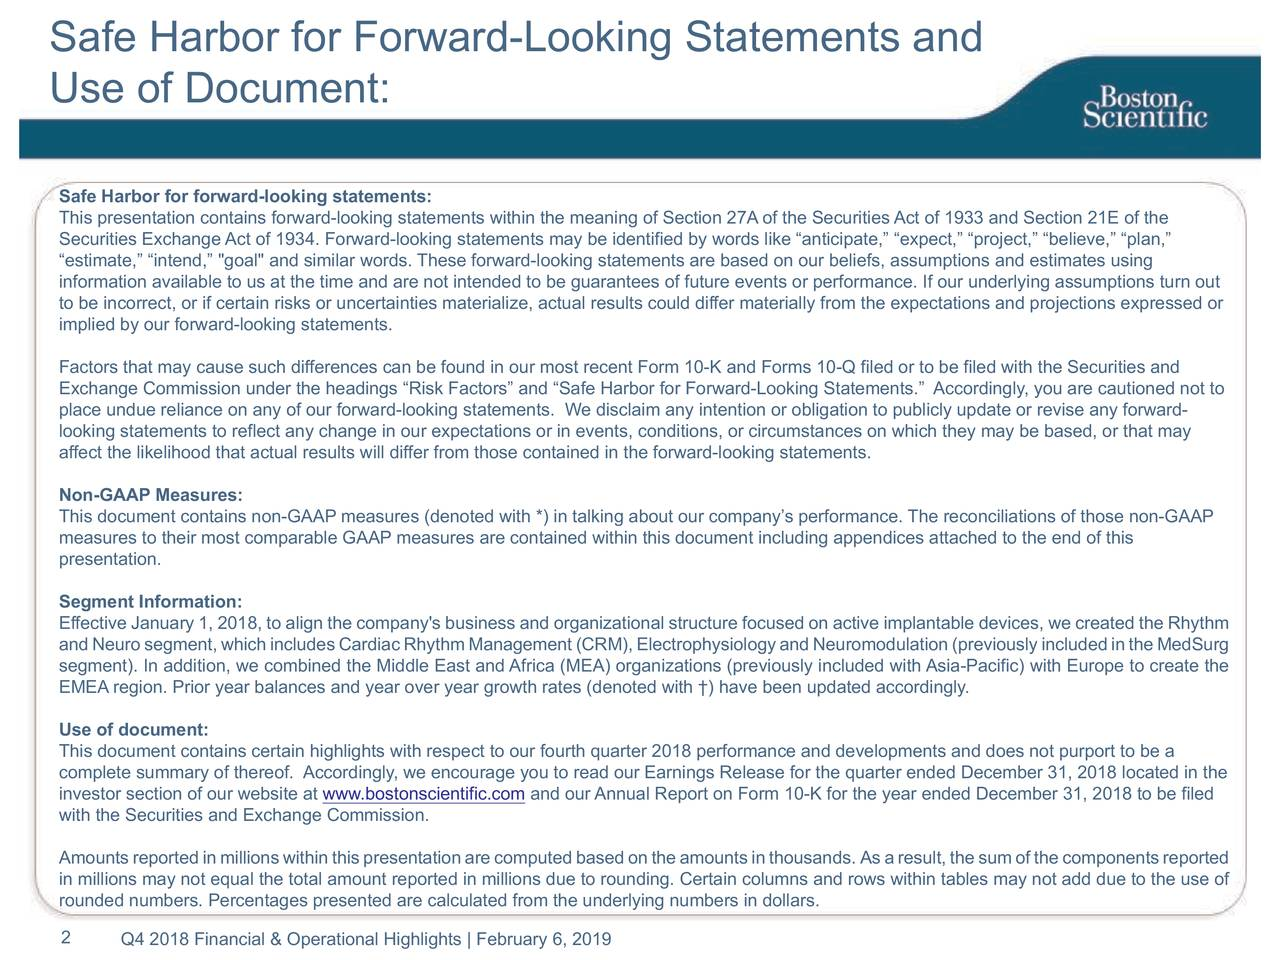 """Use of Document: Safe Harbor for forward-looking statements: This presentation contains forward-looking statements within the meaning of Section 27A of the Securities Act of 1933 and Section 21E of the Securities Exchange Act of 1934. Forward-looking statements may be identified by words like """"anticipate,"""" """"expect,"""" """"project,"""" """"believe,"""" """"plan,"""" """"estimate,"""" """"intend,"""" """"goal"""" and similar words. These forward-looking statements are based on our beliefs, assumptions and estimates using information available to us at the time and are not intended to be guarantees of future events or performance. If our underlying assumptions turn out to be incorrect, or if certain risks or uncertainties materialize, actual results could differ materially from the expectations and projections expressed or implied by our forward-looking statements. Factors that may cause such differences can be found in our most recent Form 10-K and Forms 10-Q filed or to be filed with the Securities and Exchange Commission under the headings """"Risk Factors"""" and """"Safe Harbor for Forward-Looking Statements."""" Accordingly, you are cautioned not to place undue reliance on any of our forward-looking statements. We disclaim any intention or obligation to publicly update or revise any forward- looking statements to reflect any change in our expectations or in events, conditions, or circumstances on which they may be based, or that may affect the likelihood that actual results will differ from those contained in the forward-looking statements. Non-GAAP Measures: This document contains non-GAAP measures (denoted with *) in talking about our company's performance. The reconciliations of those non-GAAP measures to their most comparable GAAP measures are contained within this document including appendices attached to the end of this presentation. Segment Information: Effective January 1, 2018, to align the company's business and organizational structure focused on active implantable devices, we created the Rhythm and N"""